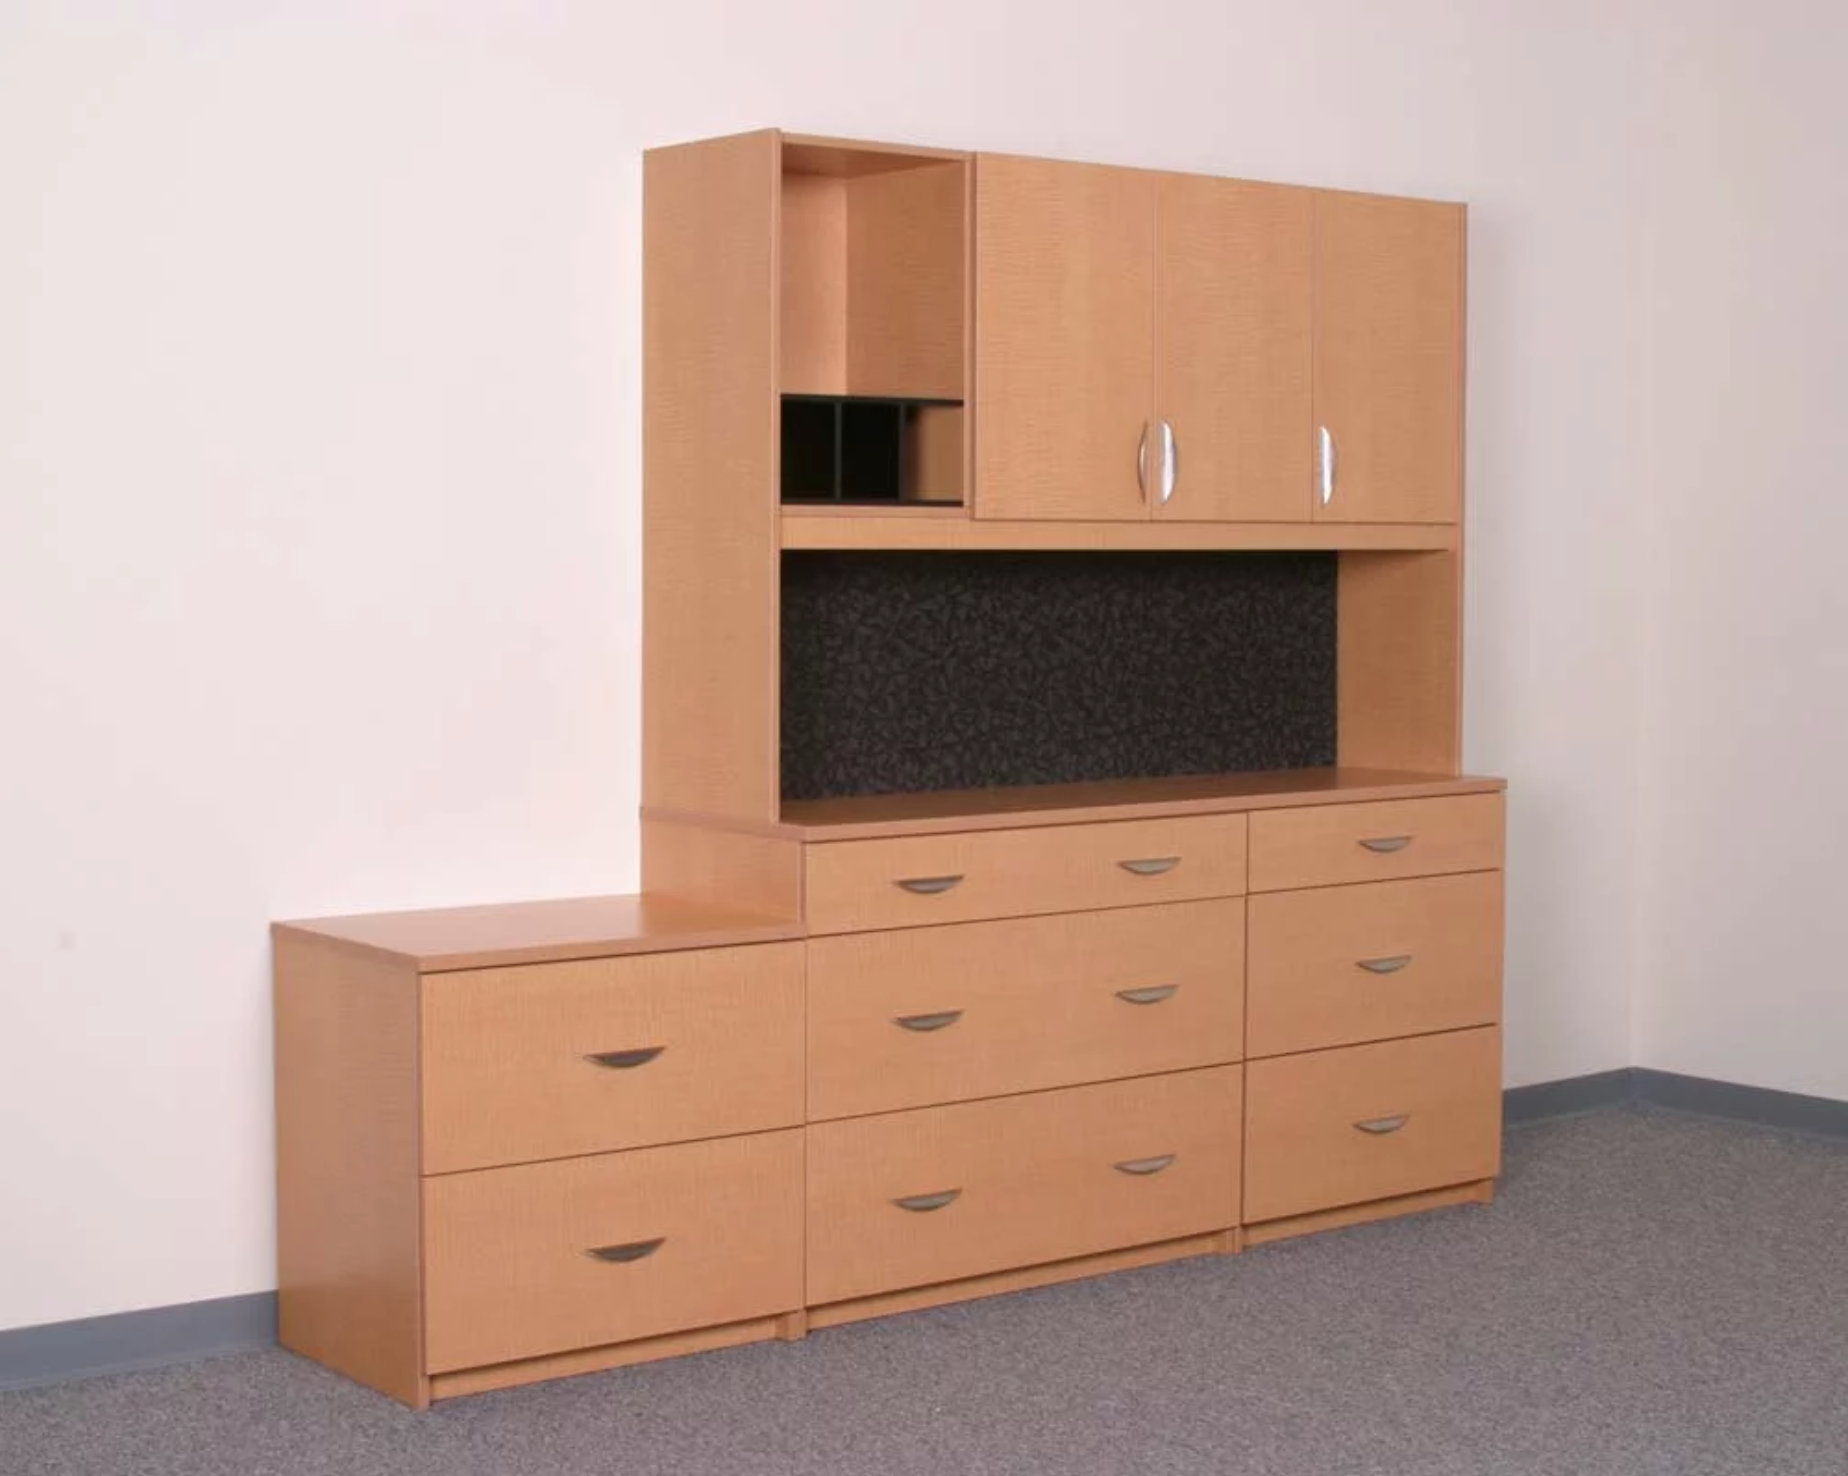 Custom office furniture piece with cabinets and closed storage